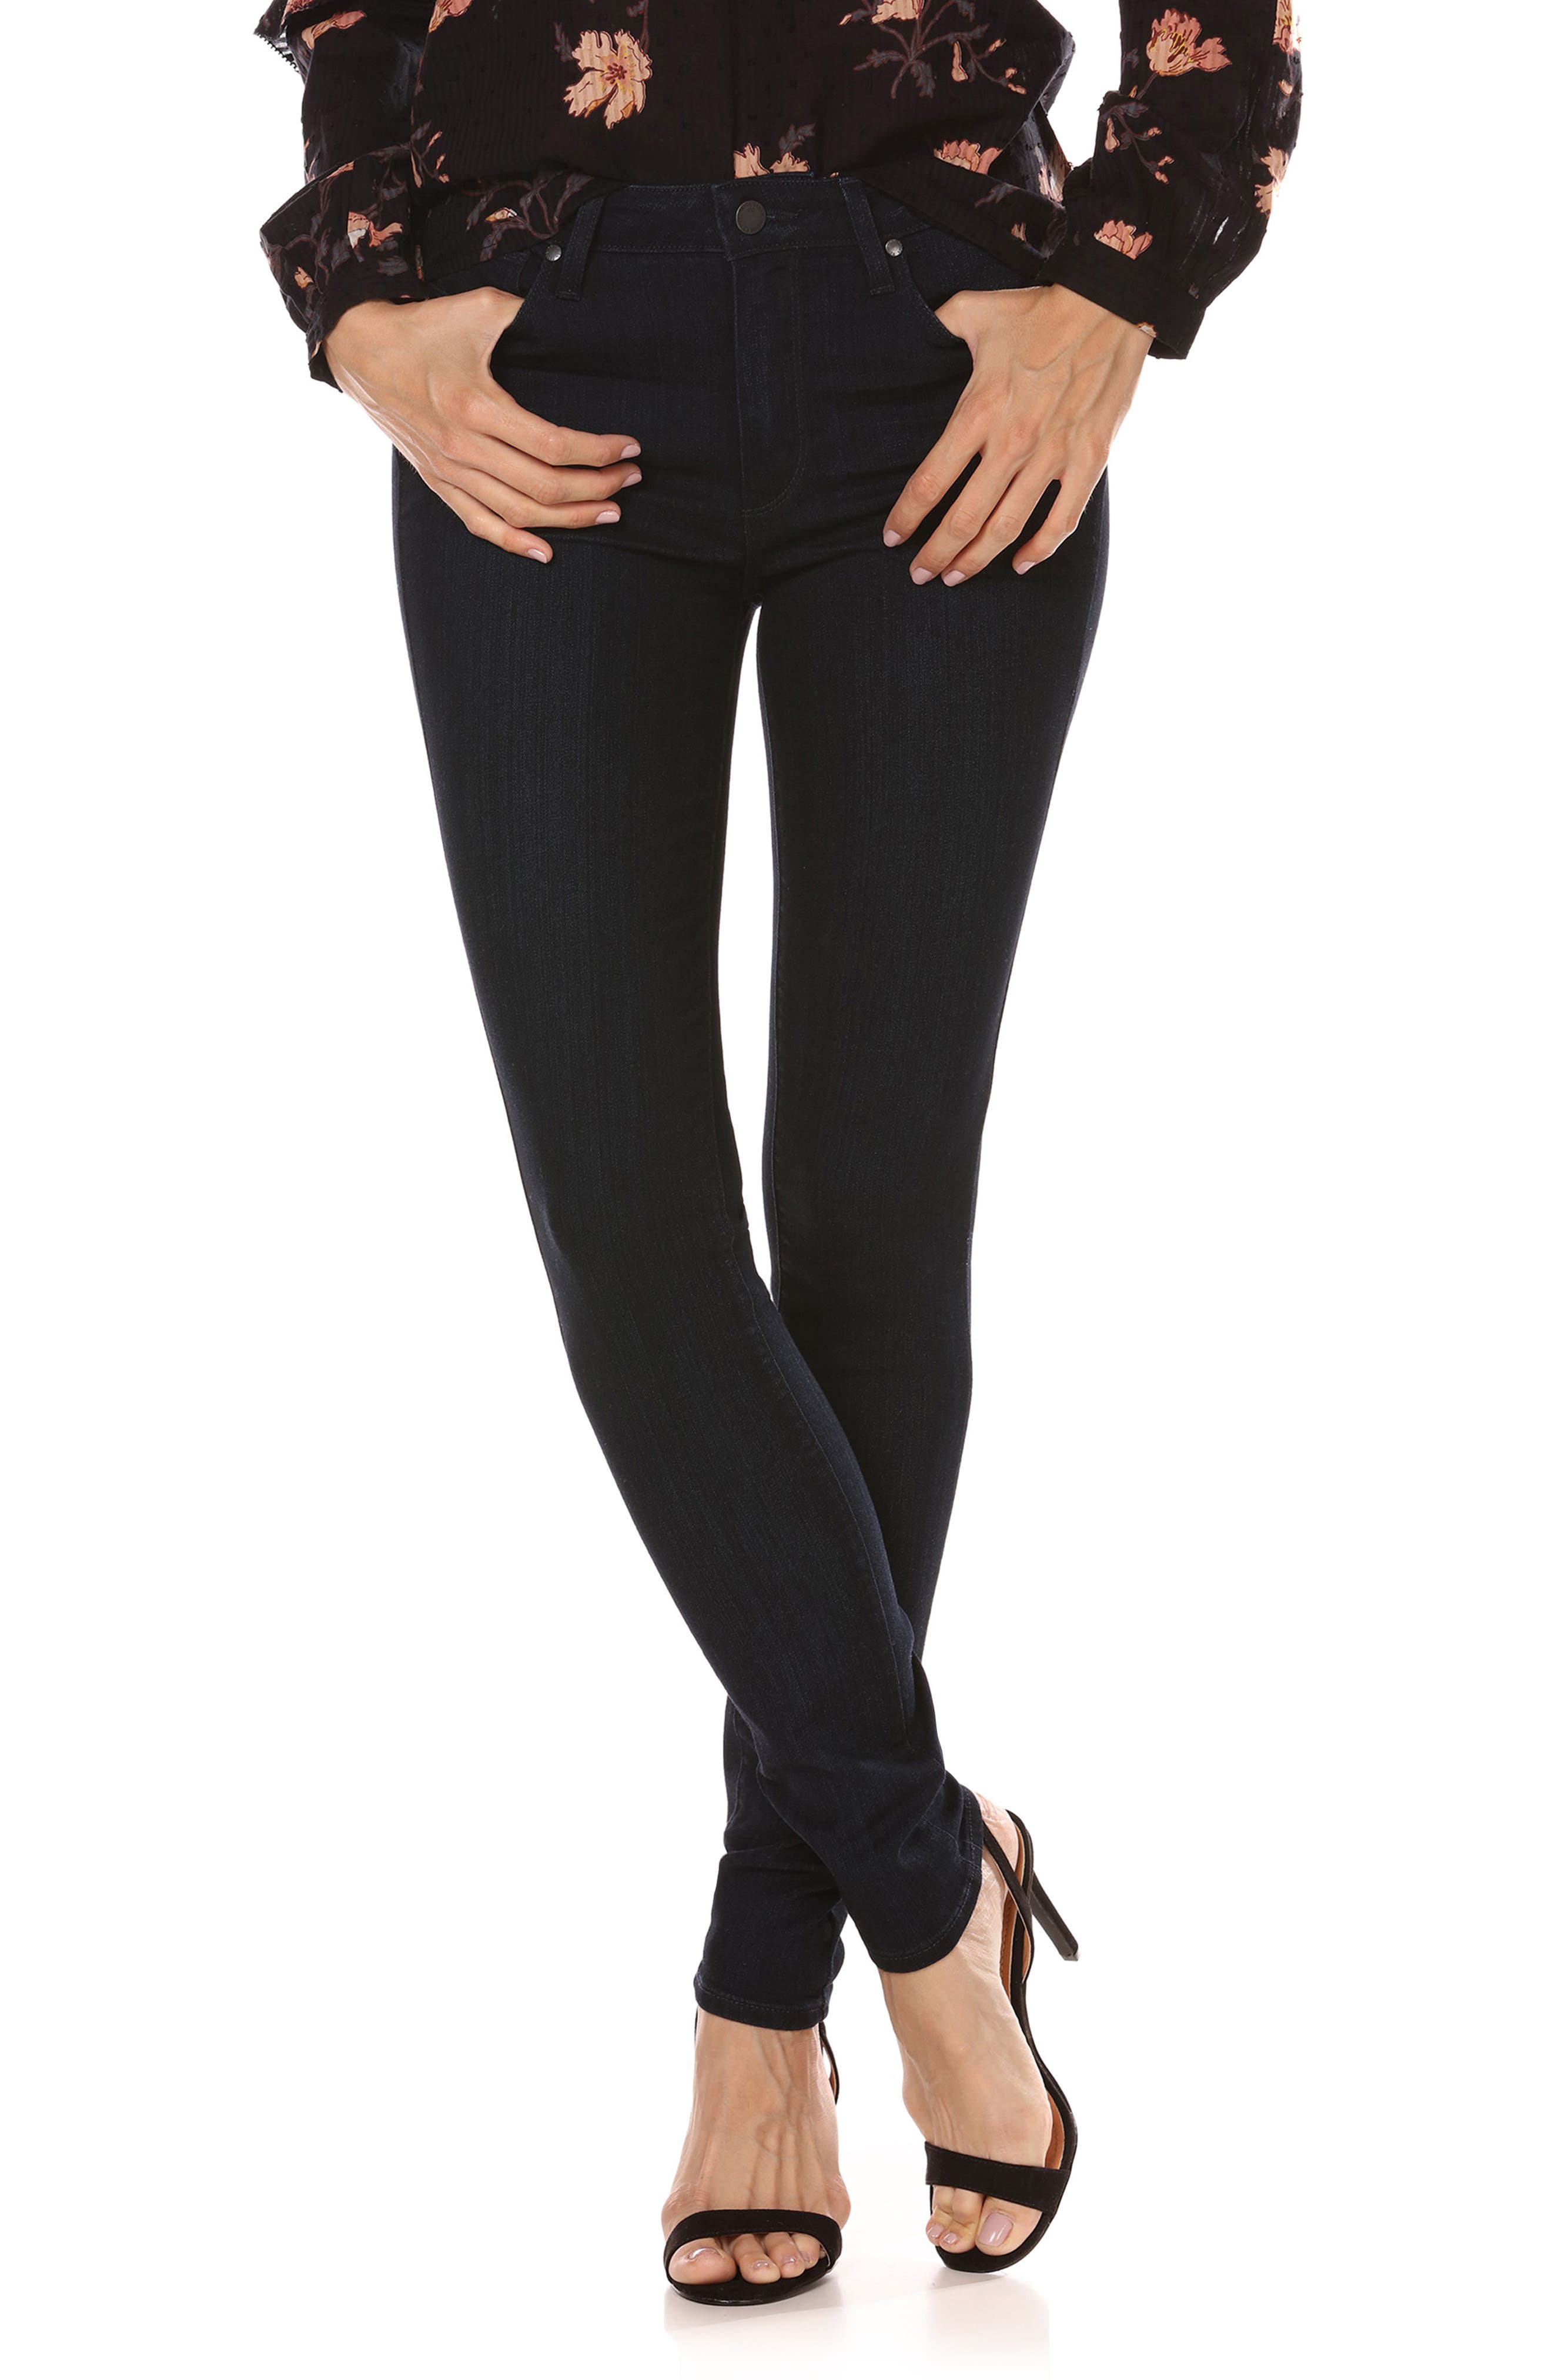 Transcend - Hoxton High Waist Ultra Skinny Jeans,                             Main thumbnail 1, color,                             Emryn